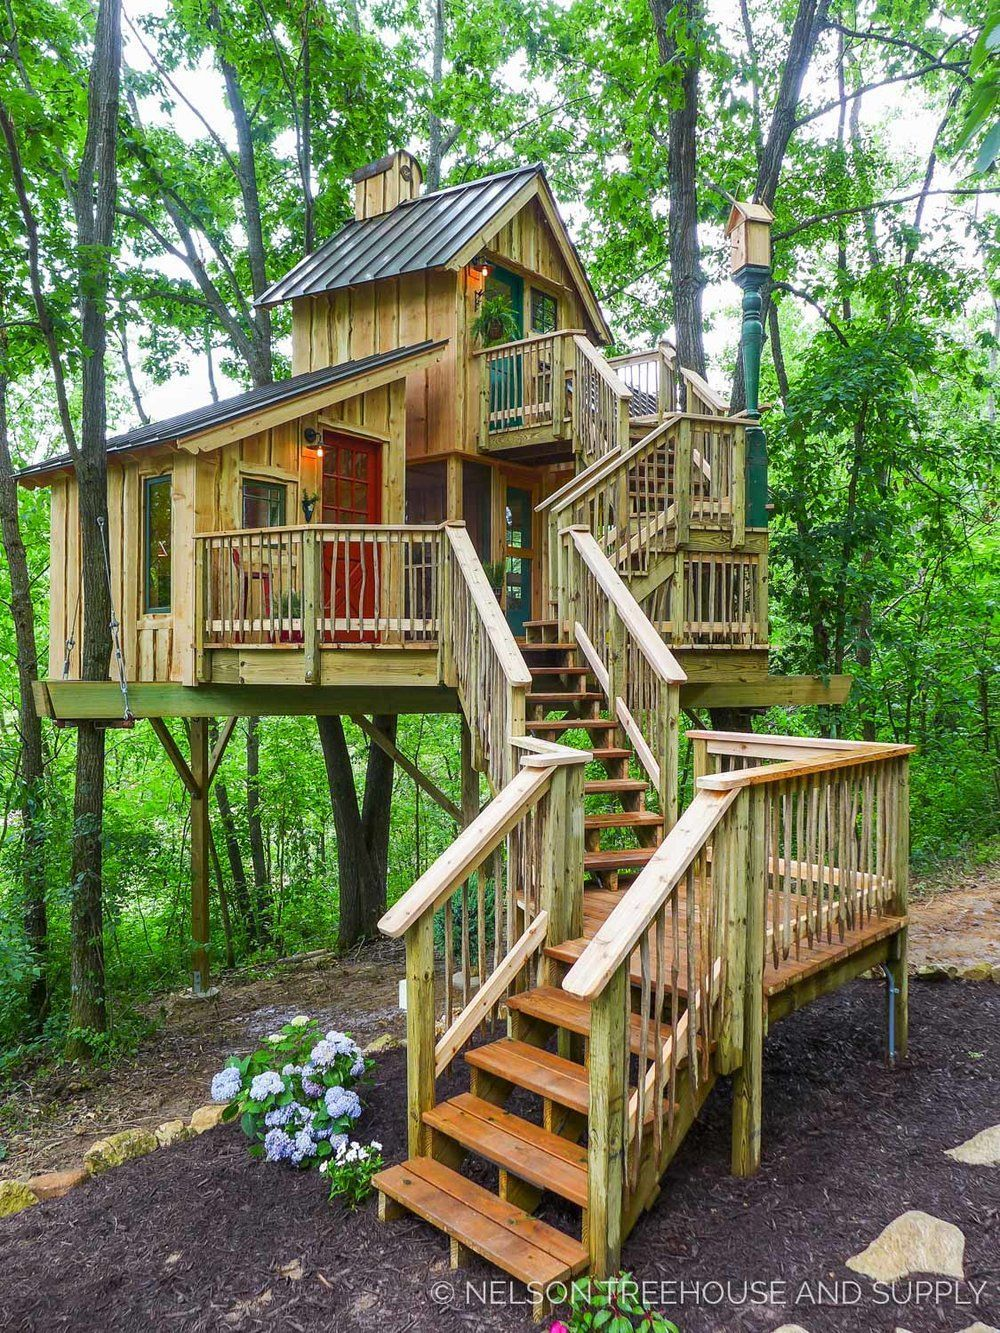 How To Build Three Room Treehouse To Live In